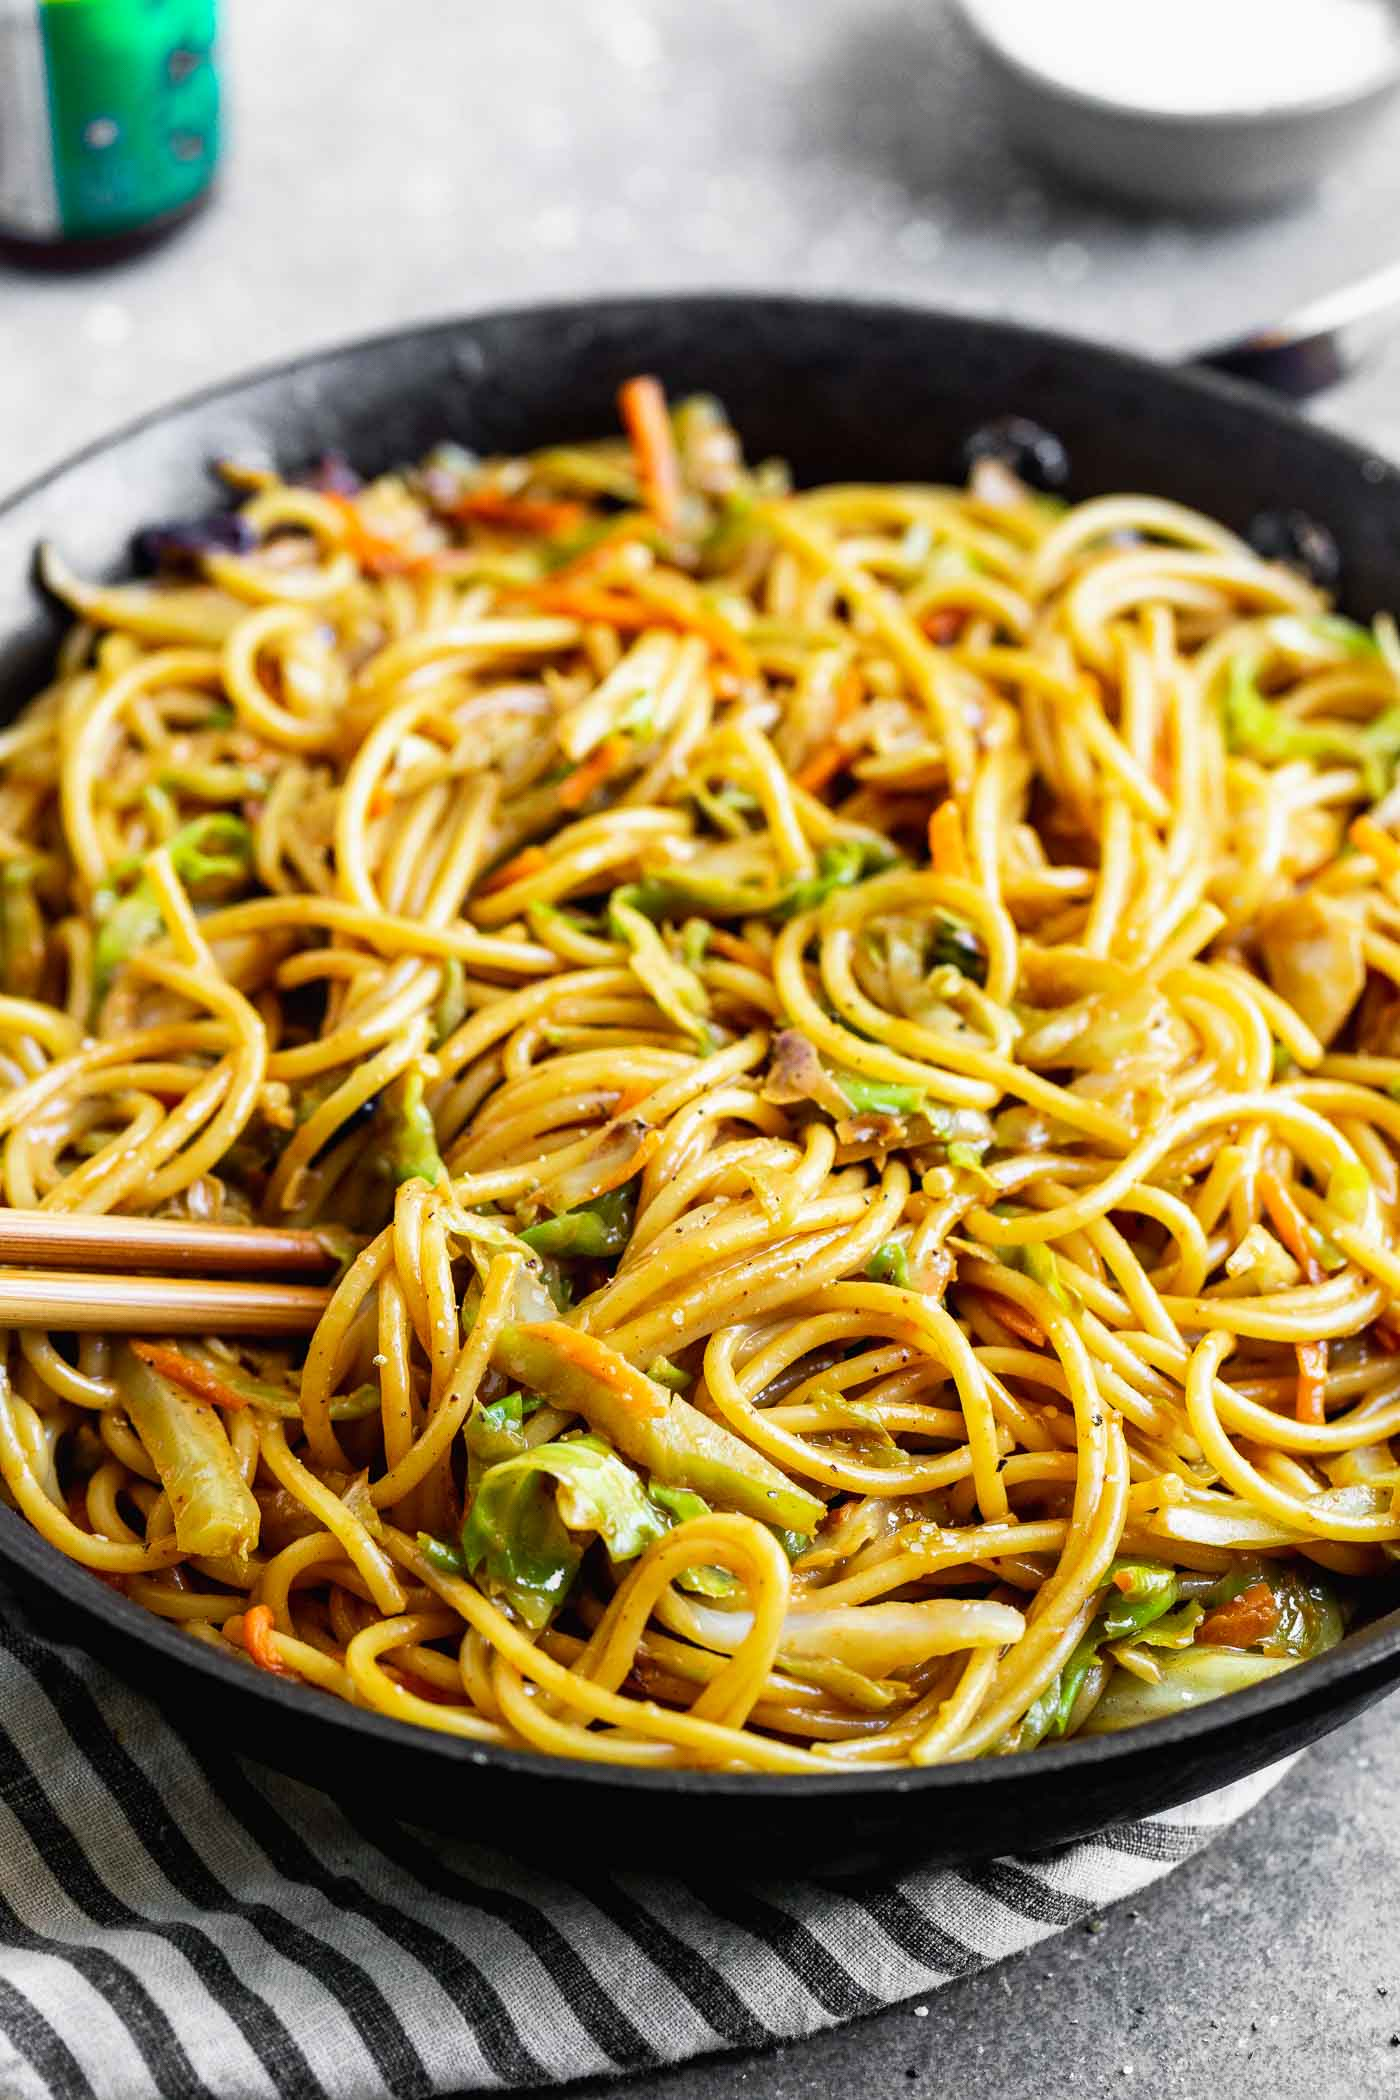 These 5-Ingredient Peanut Noodles are SO easy, and oh-so good. Thick spaghetti noodles are smothered in a hoisin-based peanut sauce, and tossed with a medley of cabbage and carrots for a delicious meal that comes together in minutes.